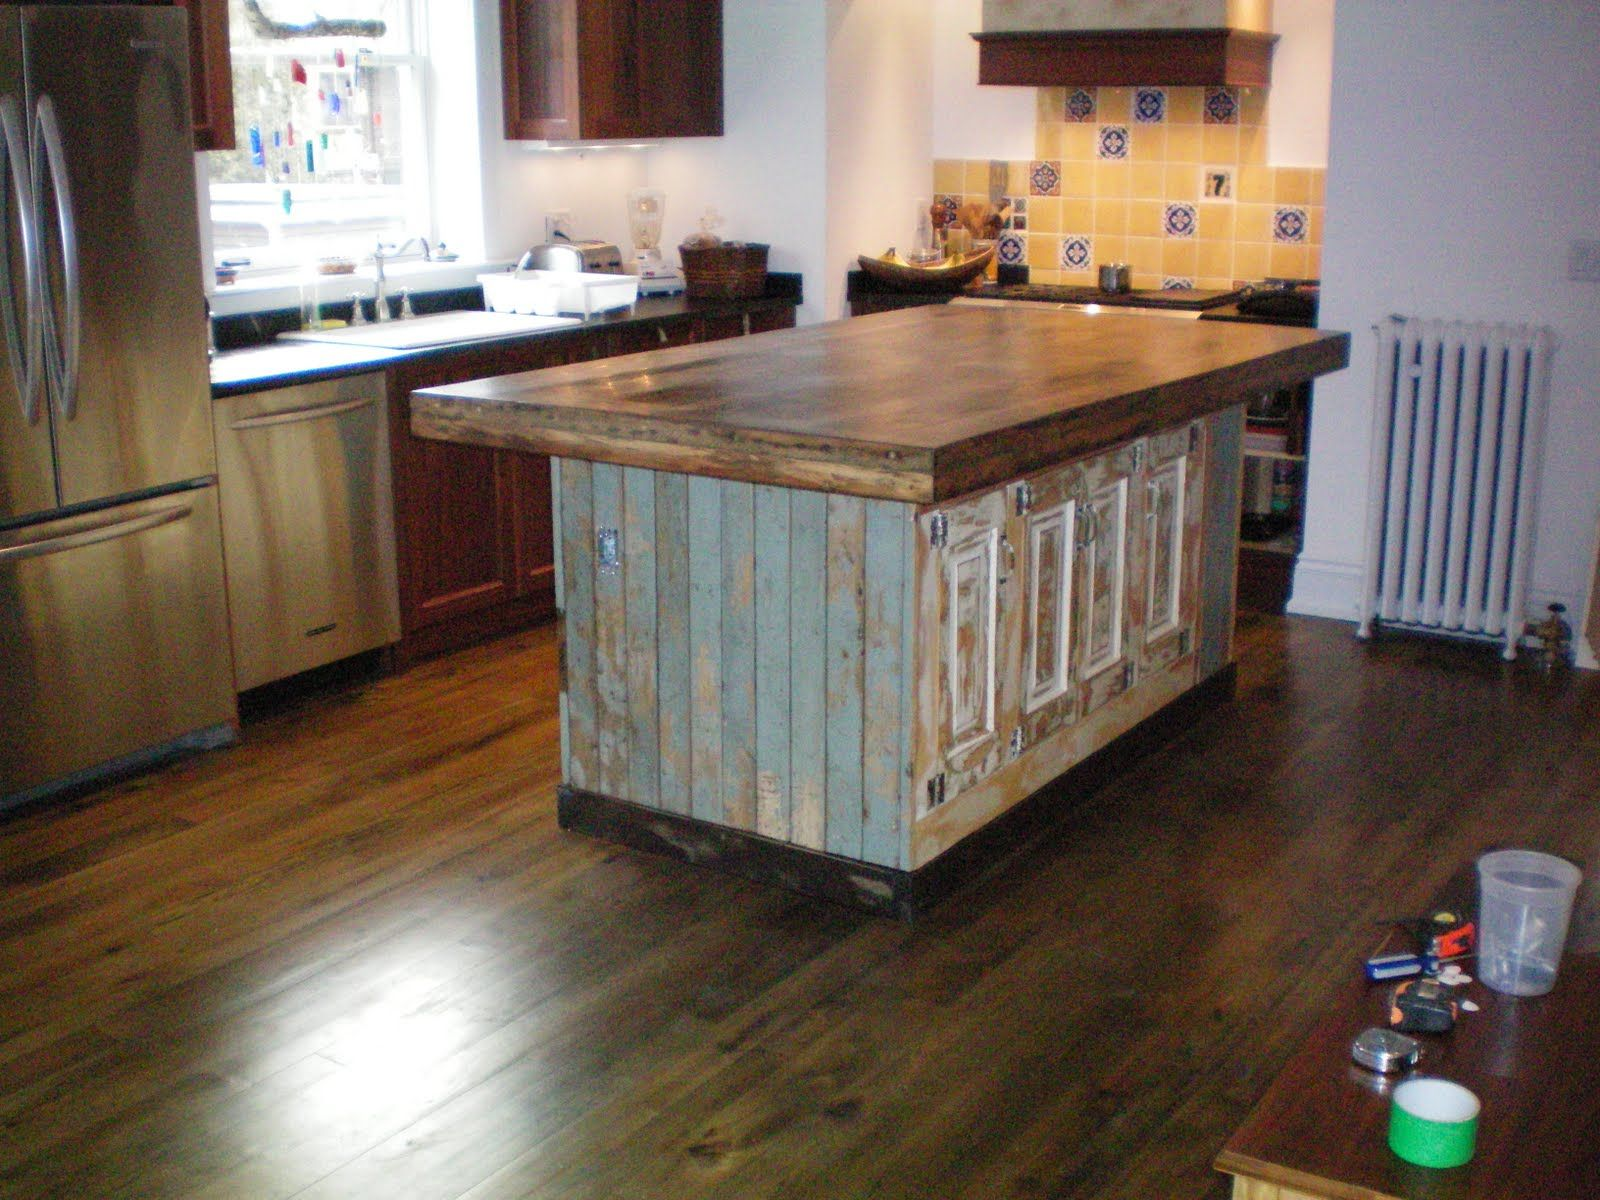 Kitchen Island From Salvaged Doors Not Sure The Hubster